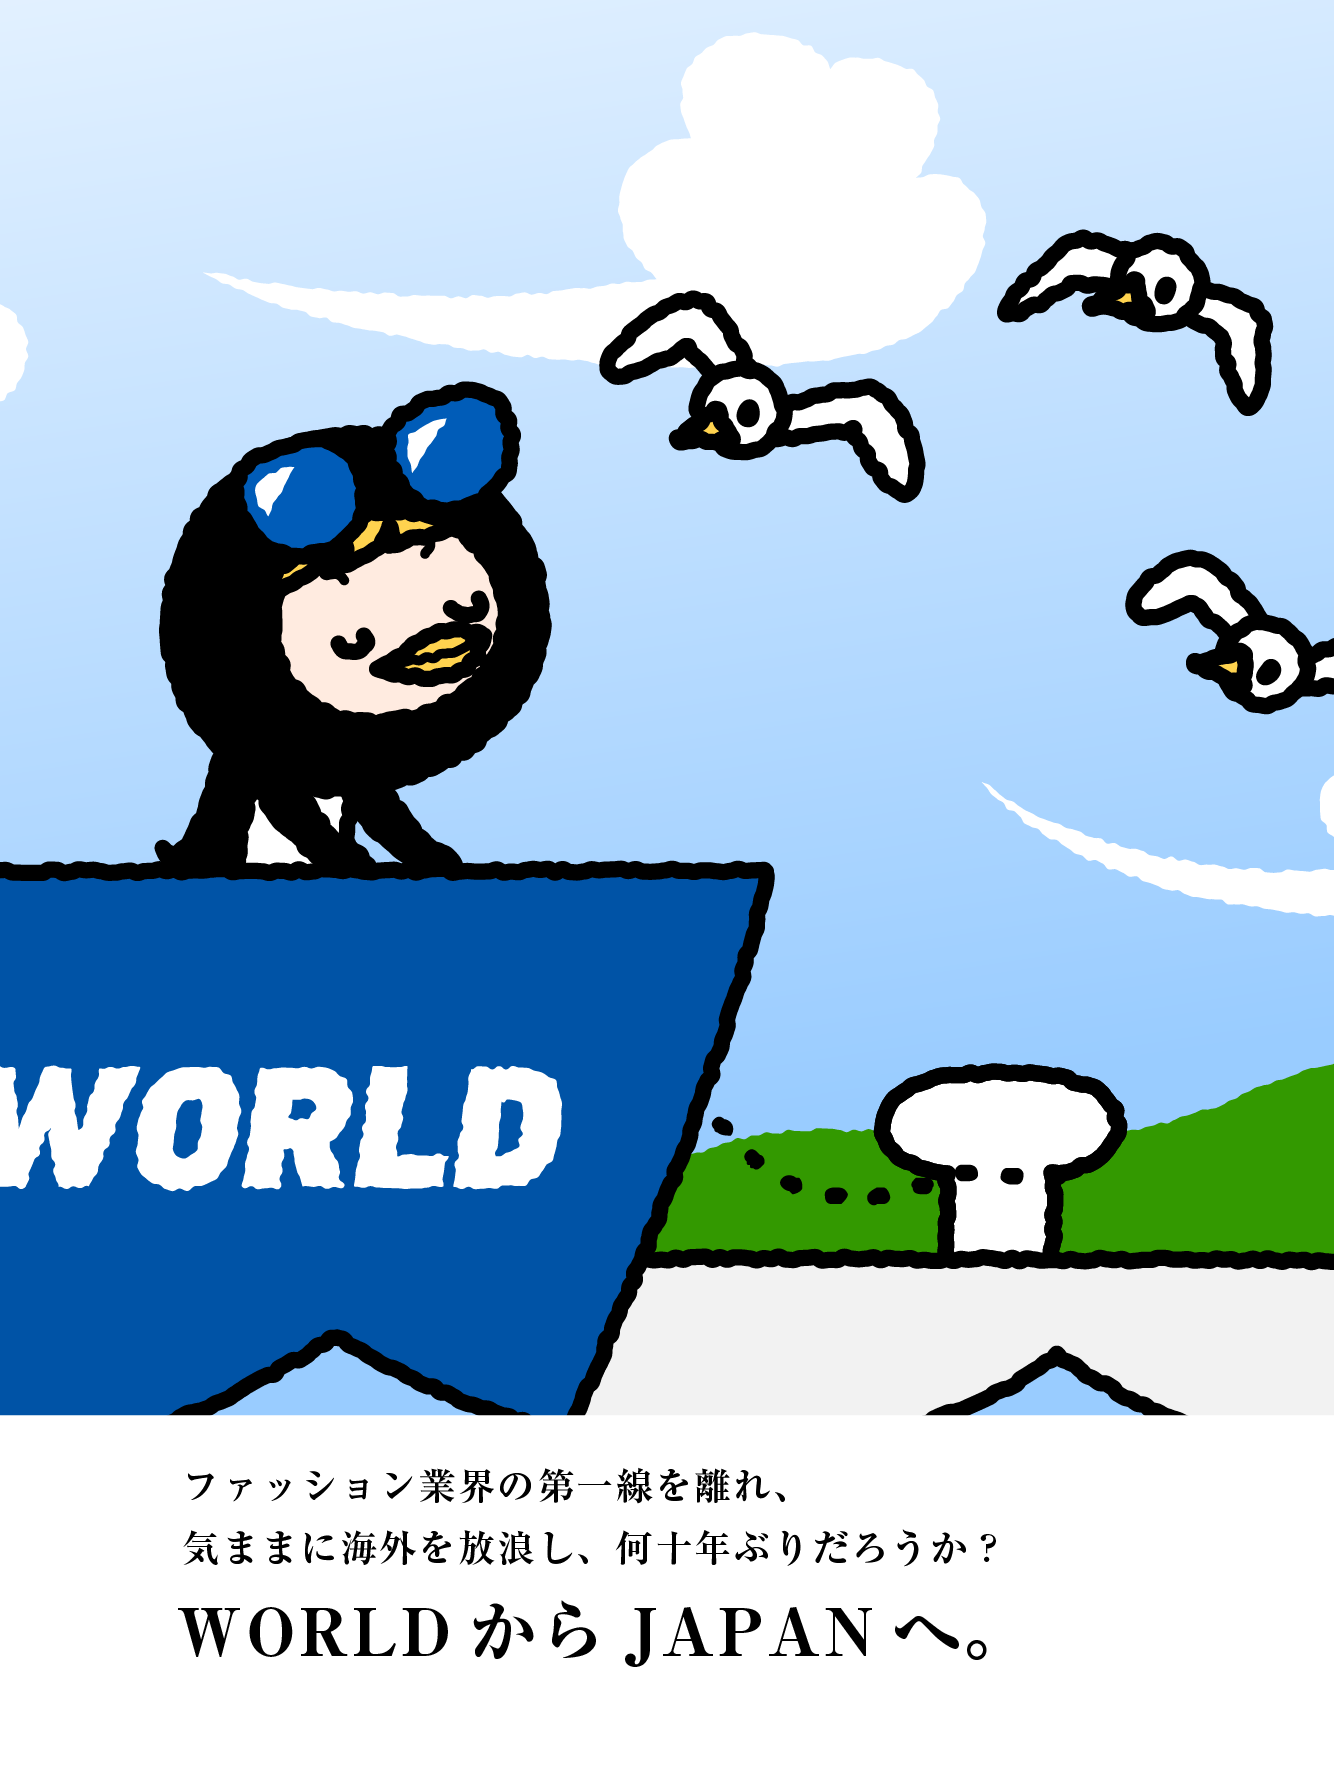 world-introduction-01.png